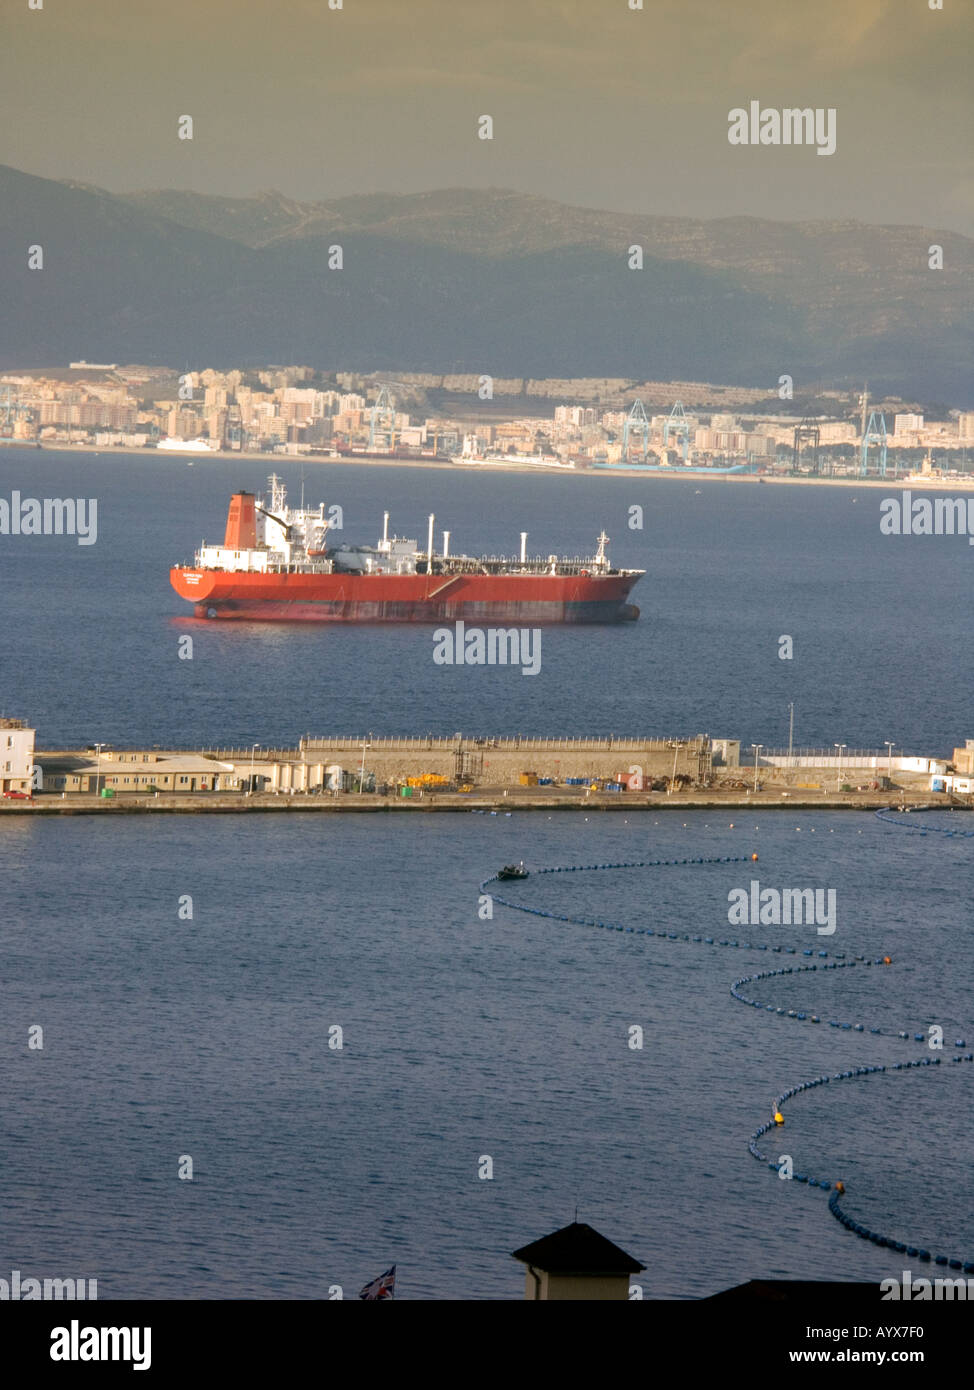 The Bay of Gibraltar freight ship shipping tanker yacht sail sailing boat Queensway Wharf Bay of Gibraltar Gibraltarian - Stock Image